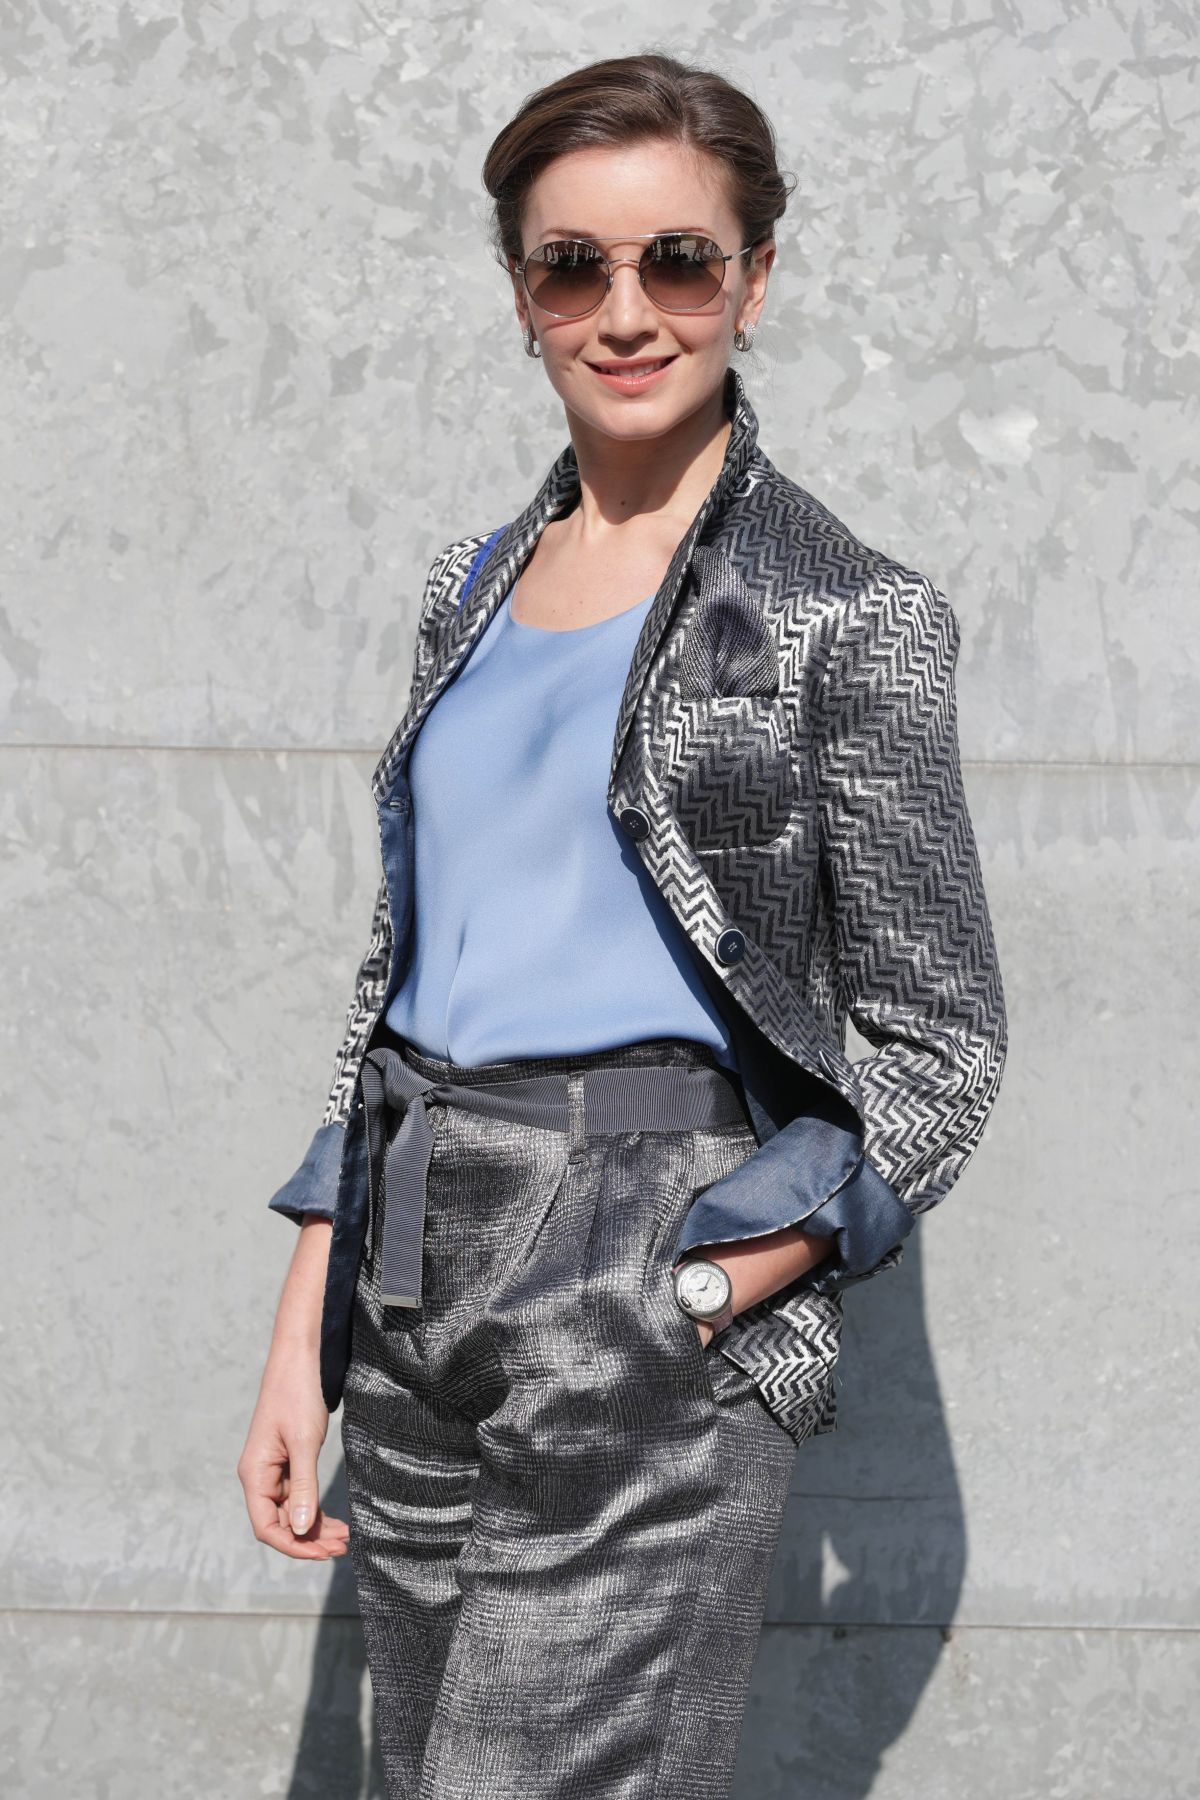 CARLY PAOLI Arrives at Armani Fashion Show in Milan 02/27/2017